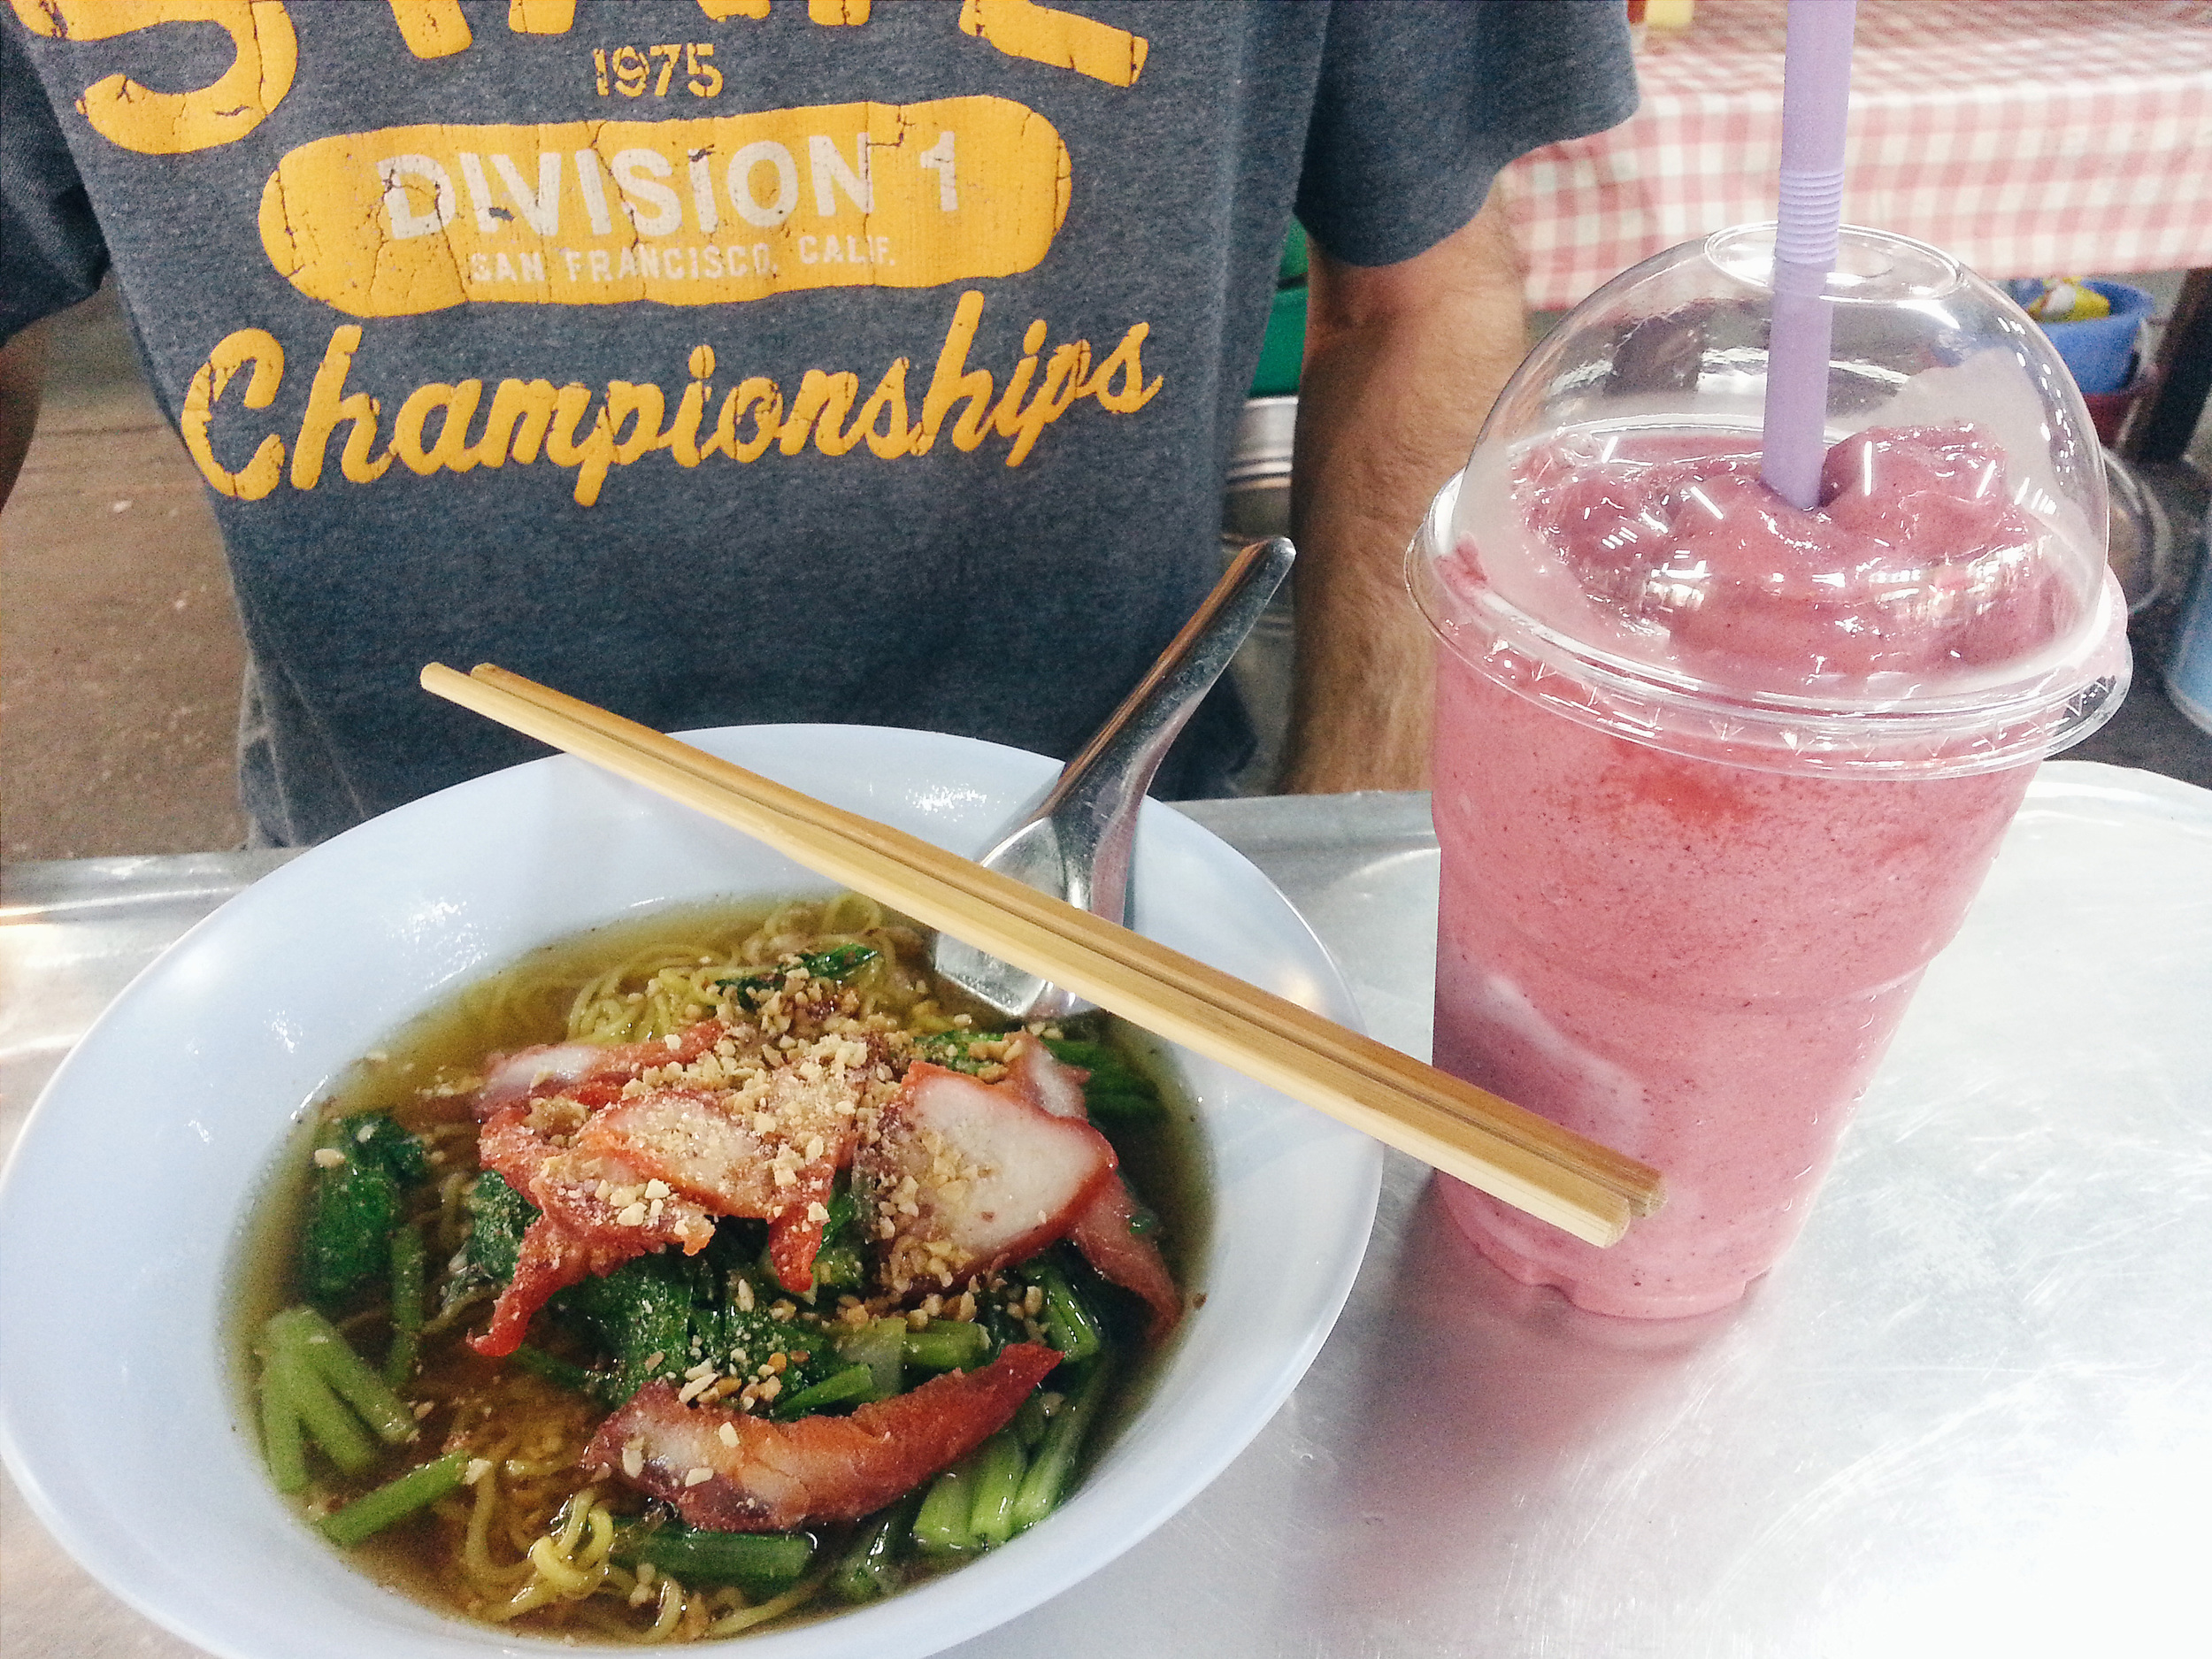 Bonus Picture: Dinner that night.Trio Berry Smoothie and Pork soup / 70 baht / $2.00 usd